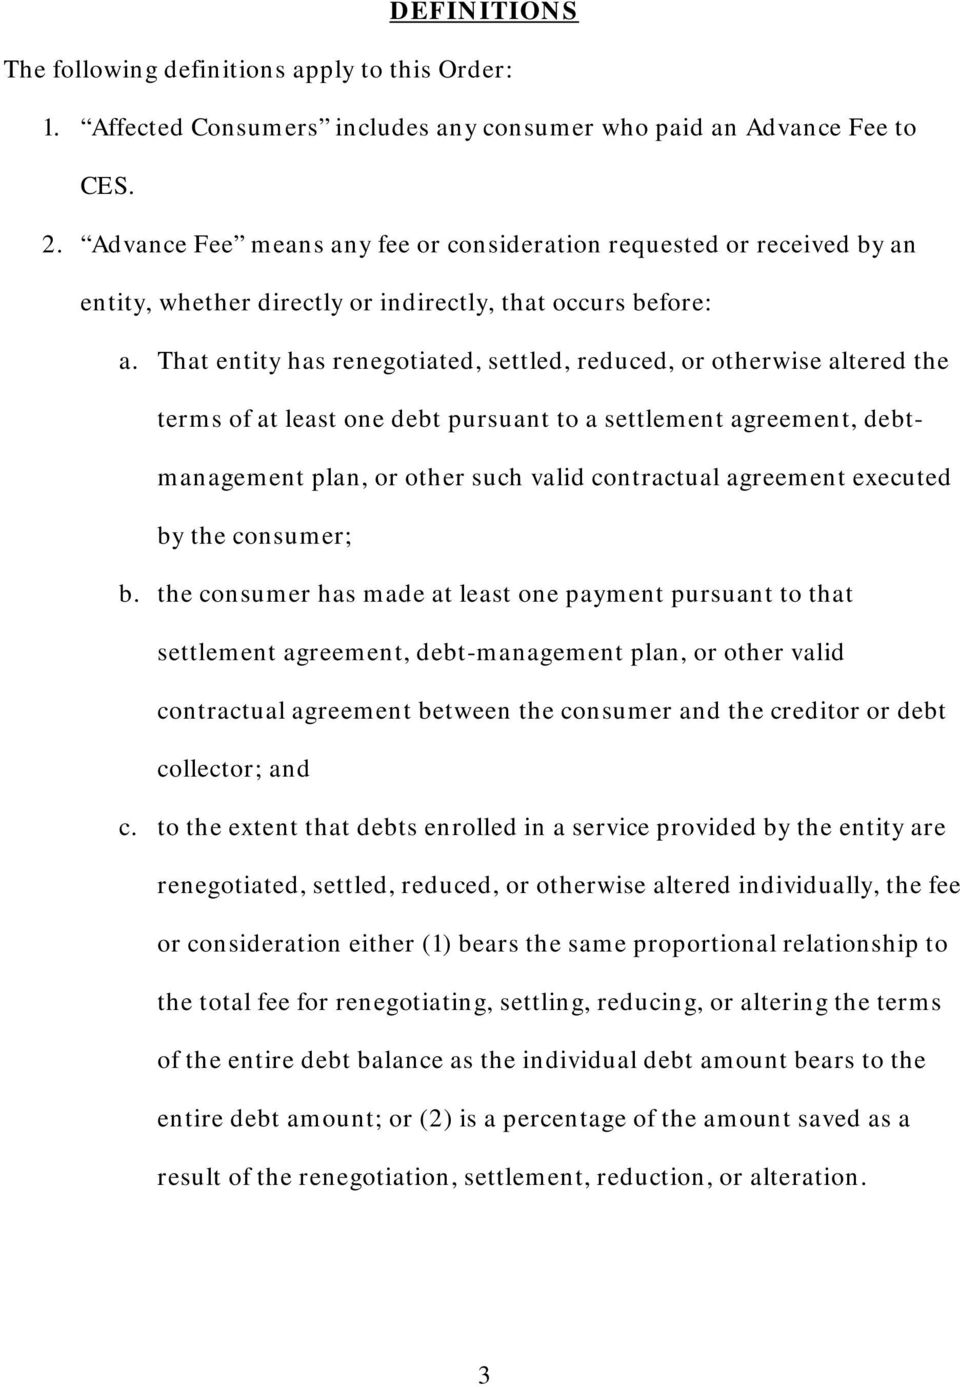 That entity has renegotiated, settled, reduced, or otherwise altered the terms of at least one debt pursuant to a settlement agreement, debtmanagement plan, or other such valid contractual agreement